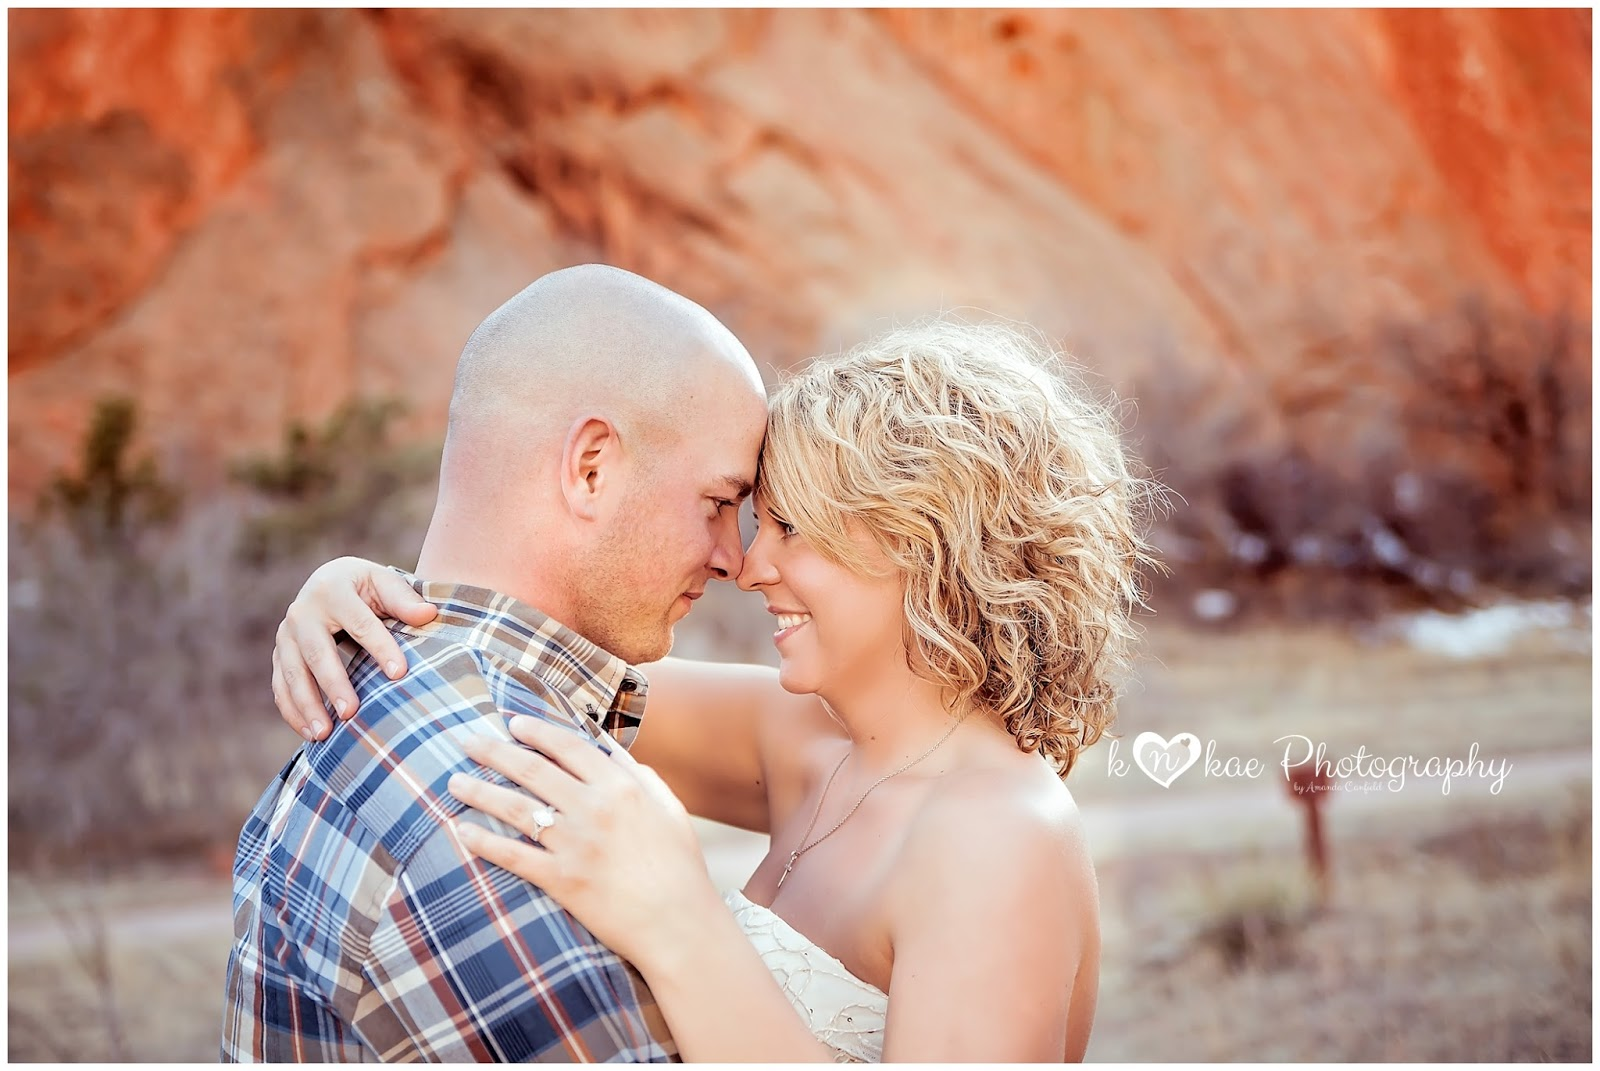 k 'n kae photography colorado springs fort carson engagement session family photographer garden of the gods couples session wedding sunset session